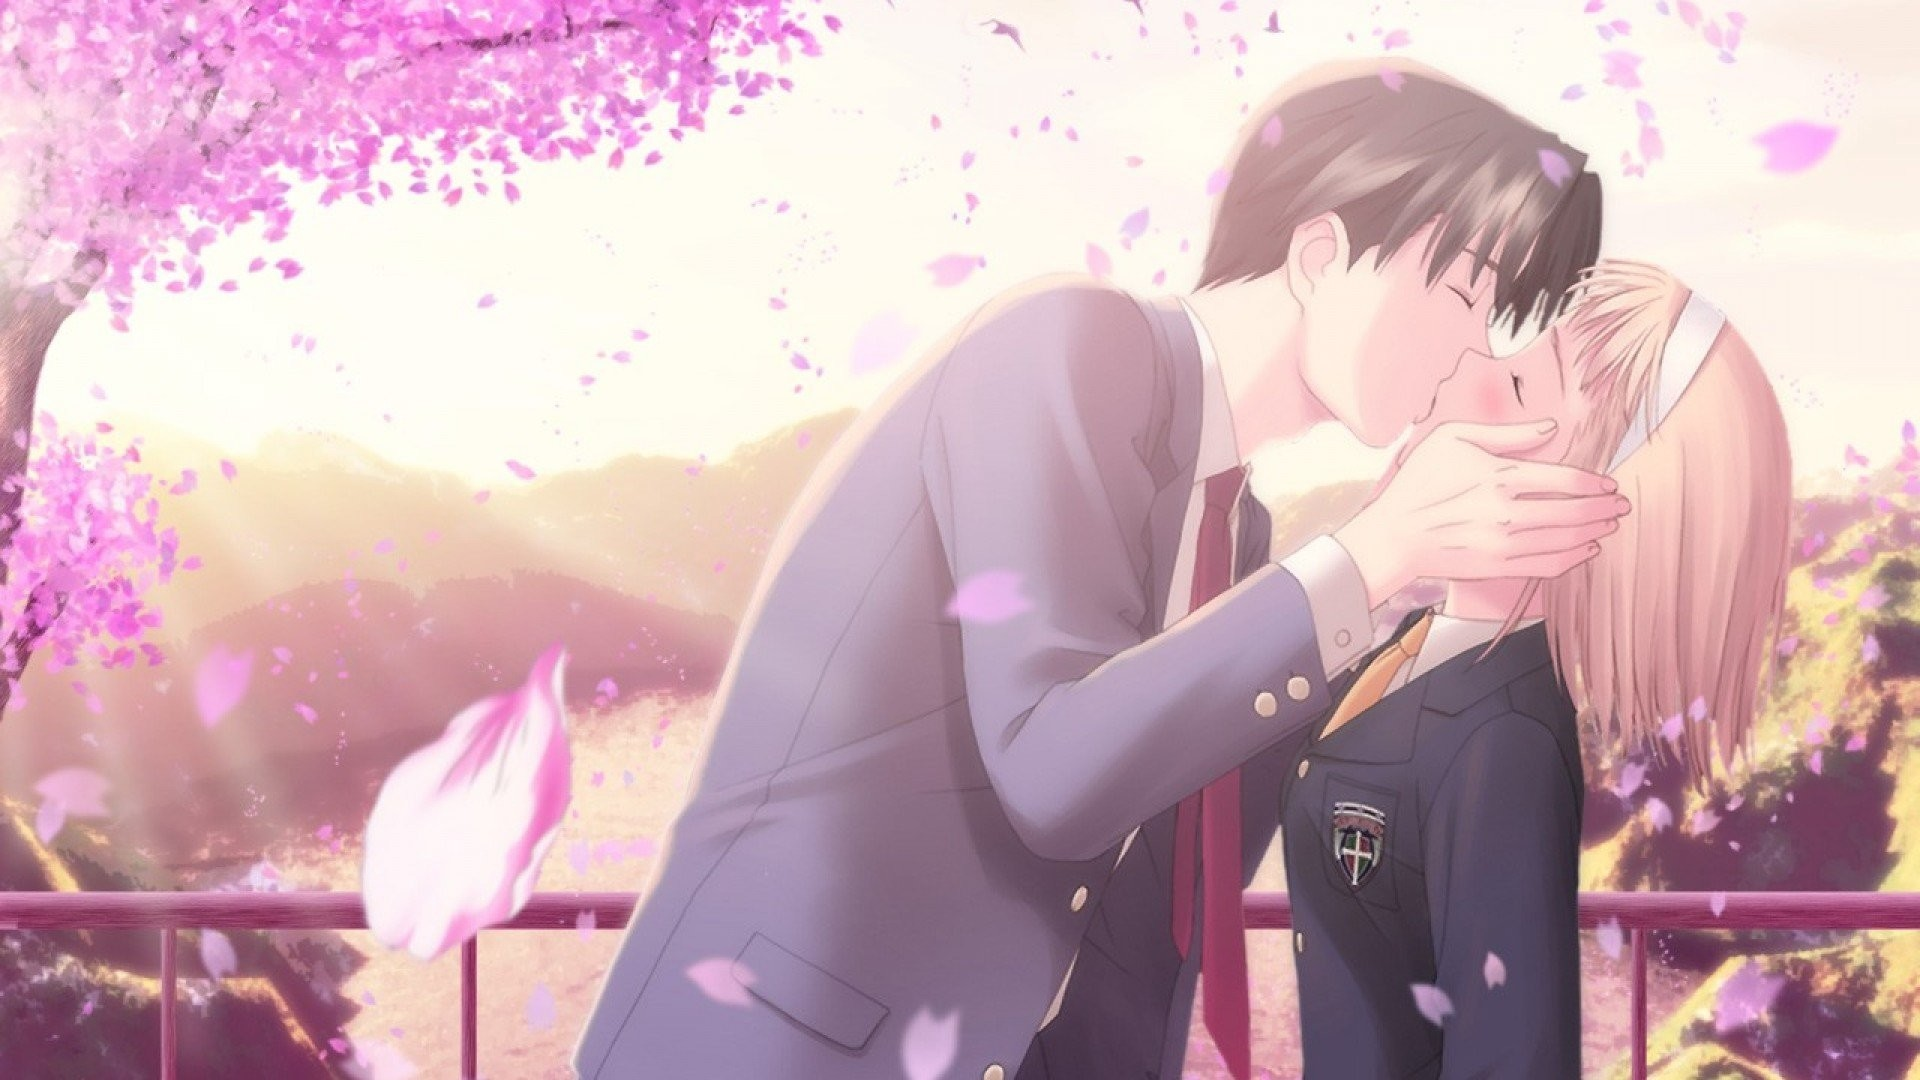 Res: 1920x1080, 1929x1206 anime couple love wallpaper images with high resolution wallpaper  on anime category similar with and quotes